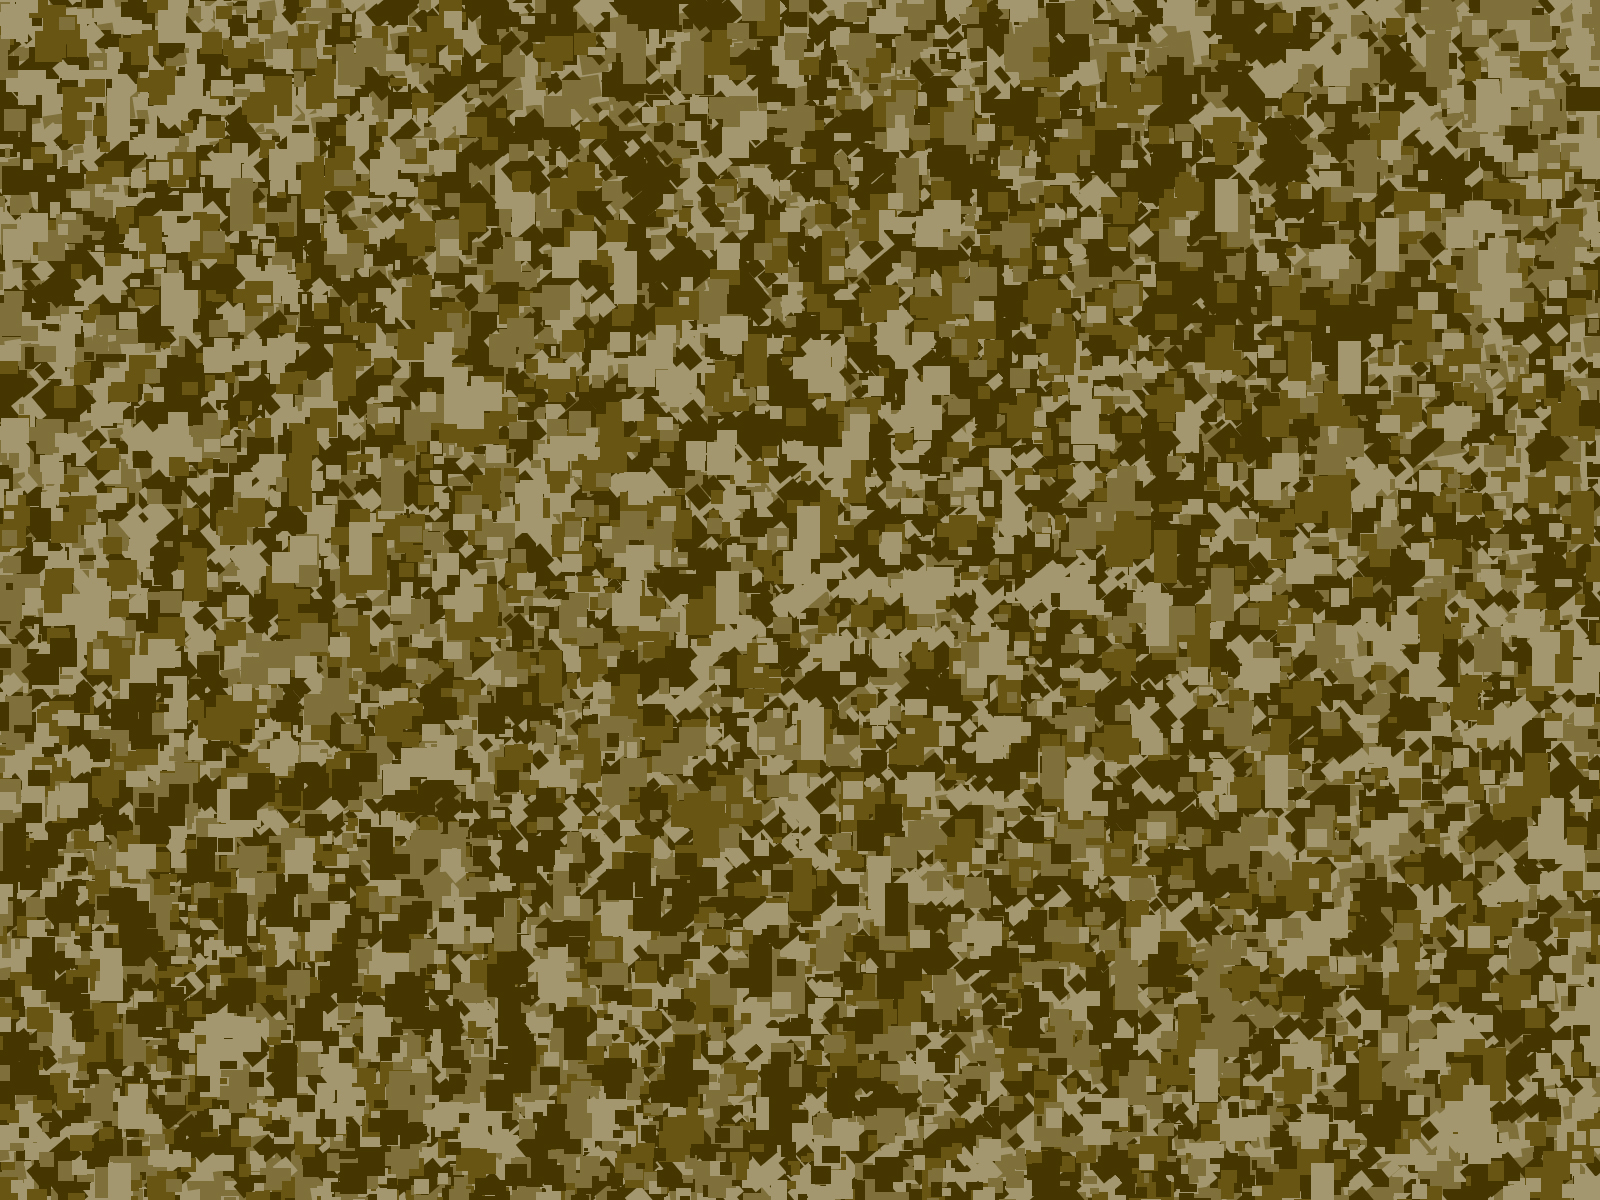 camo desktop wallpaper full screen-#21